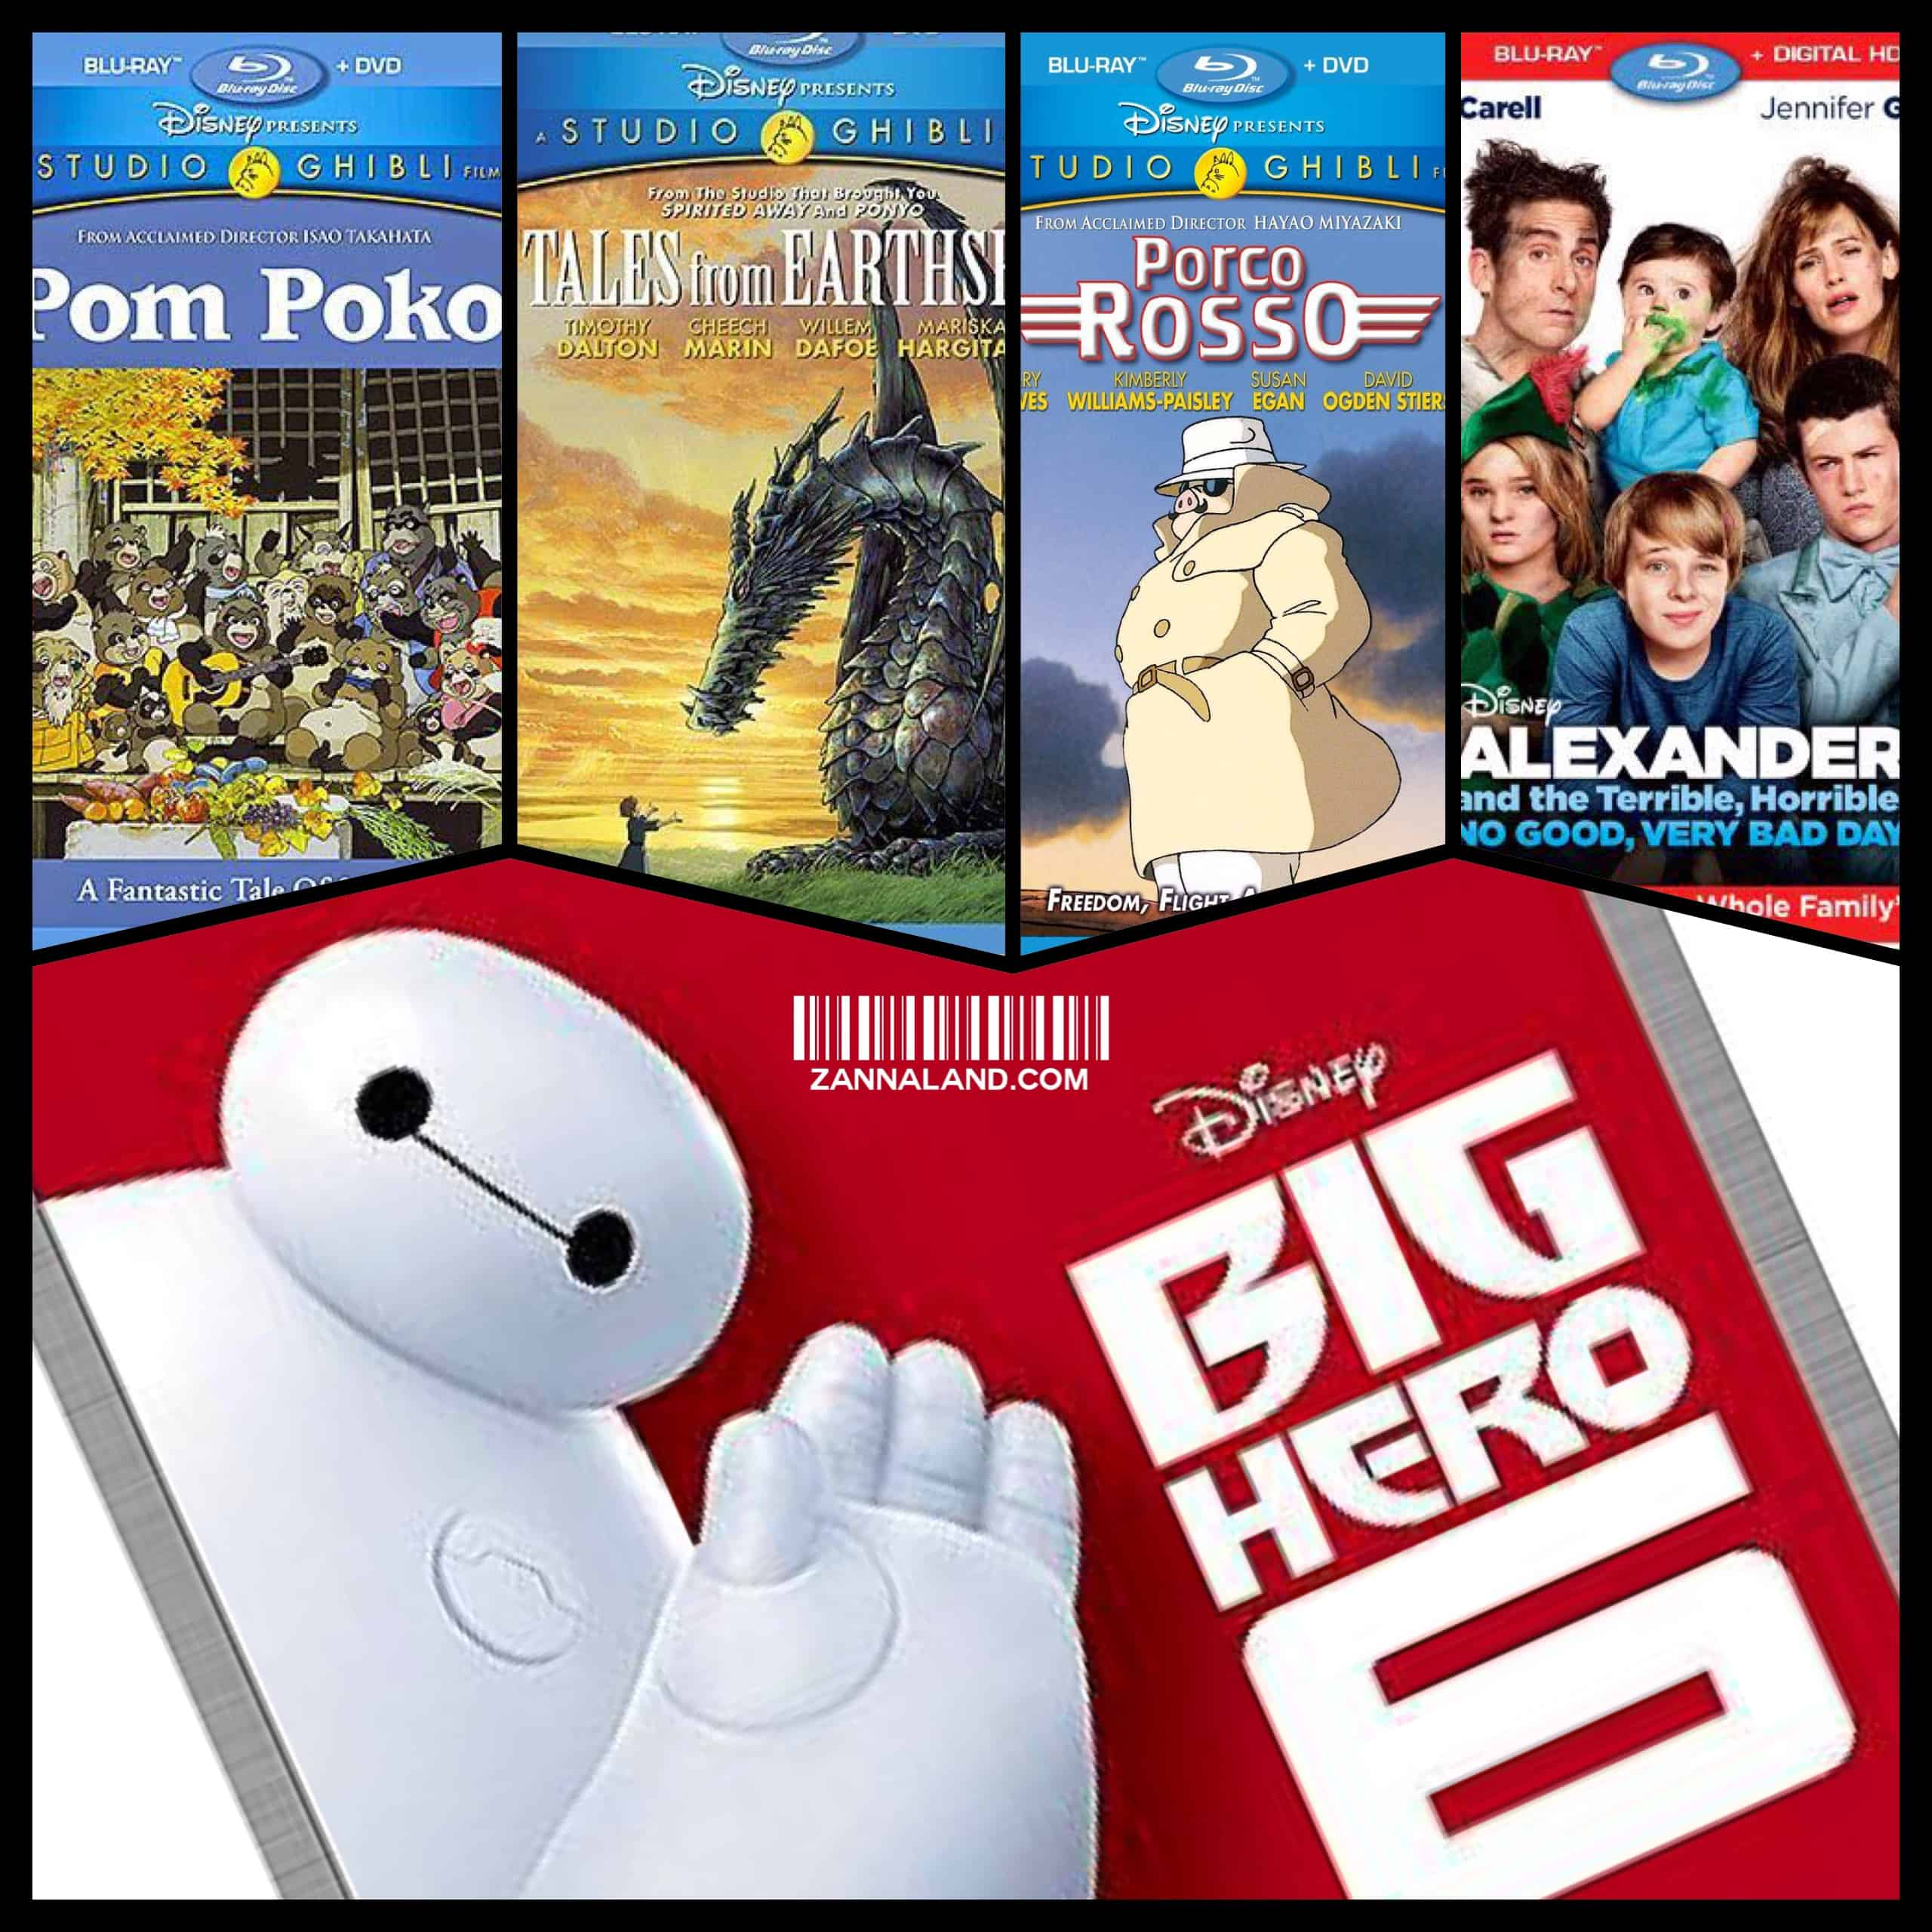 February DVD and Blu-Ray Releases from Disney